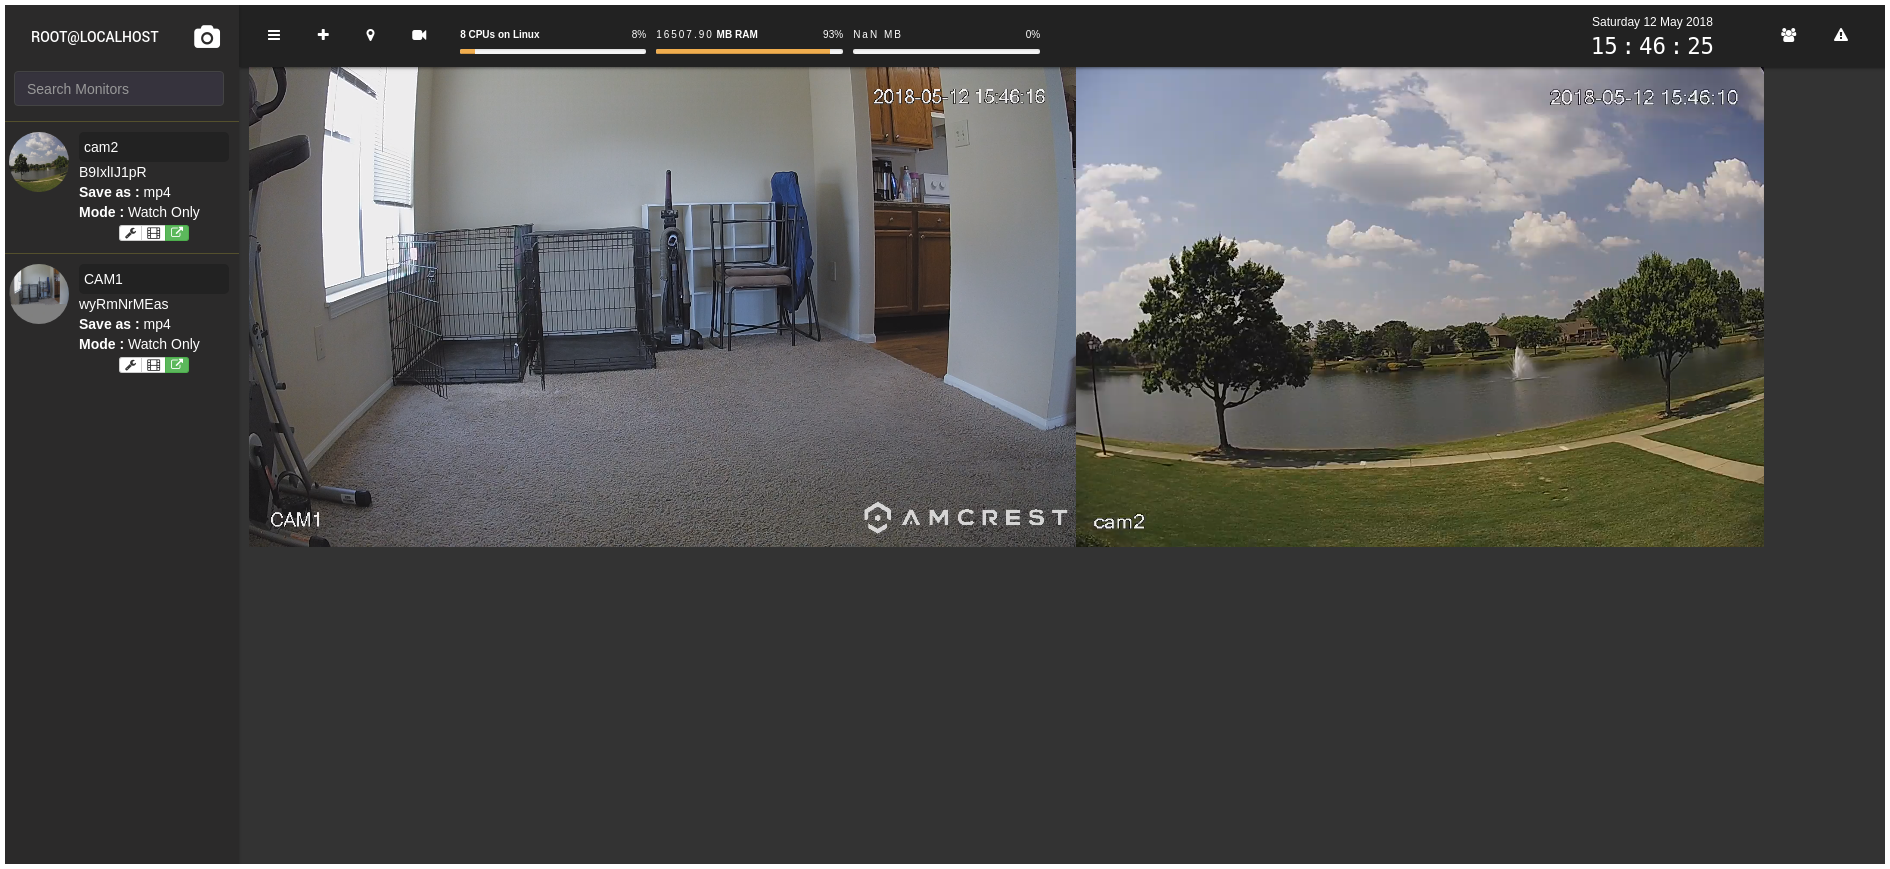 Linux Surveillance Camera Software Evaluation - Jason